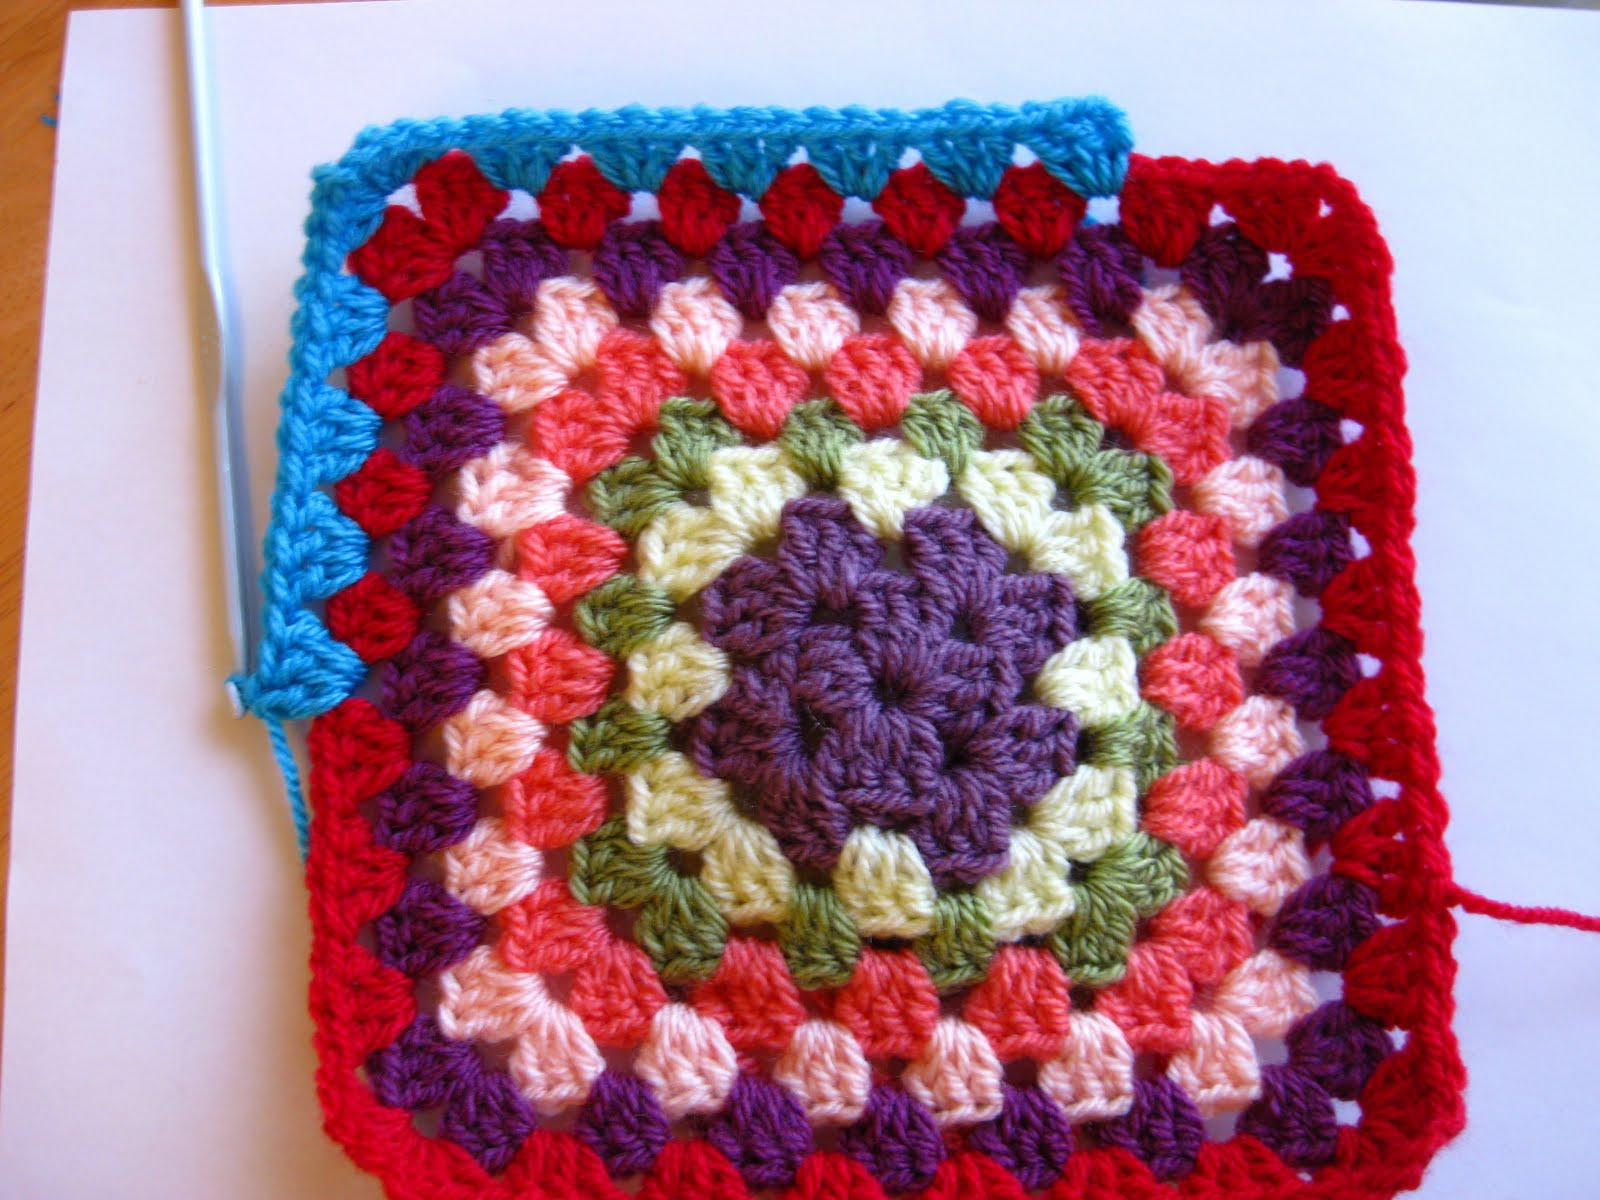 Crocheting Granny Squares : Bunny Mummy: How to crochet a Granny Square